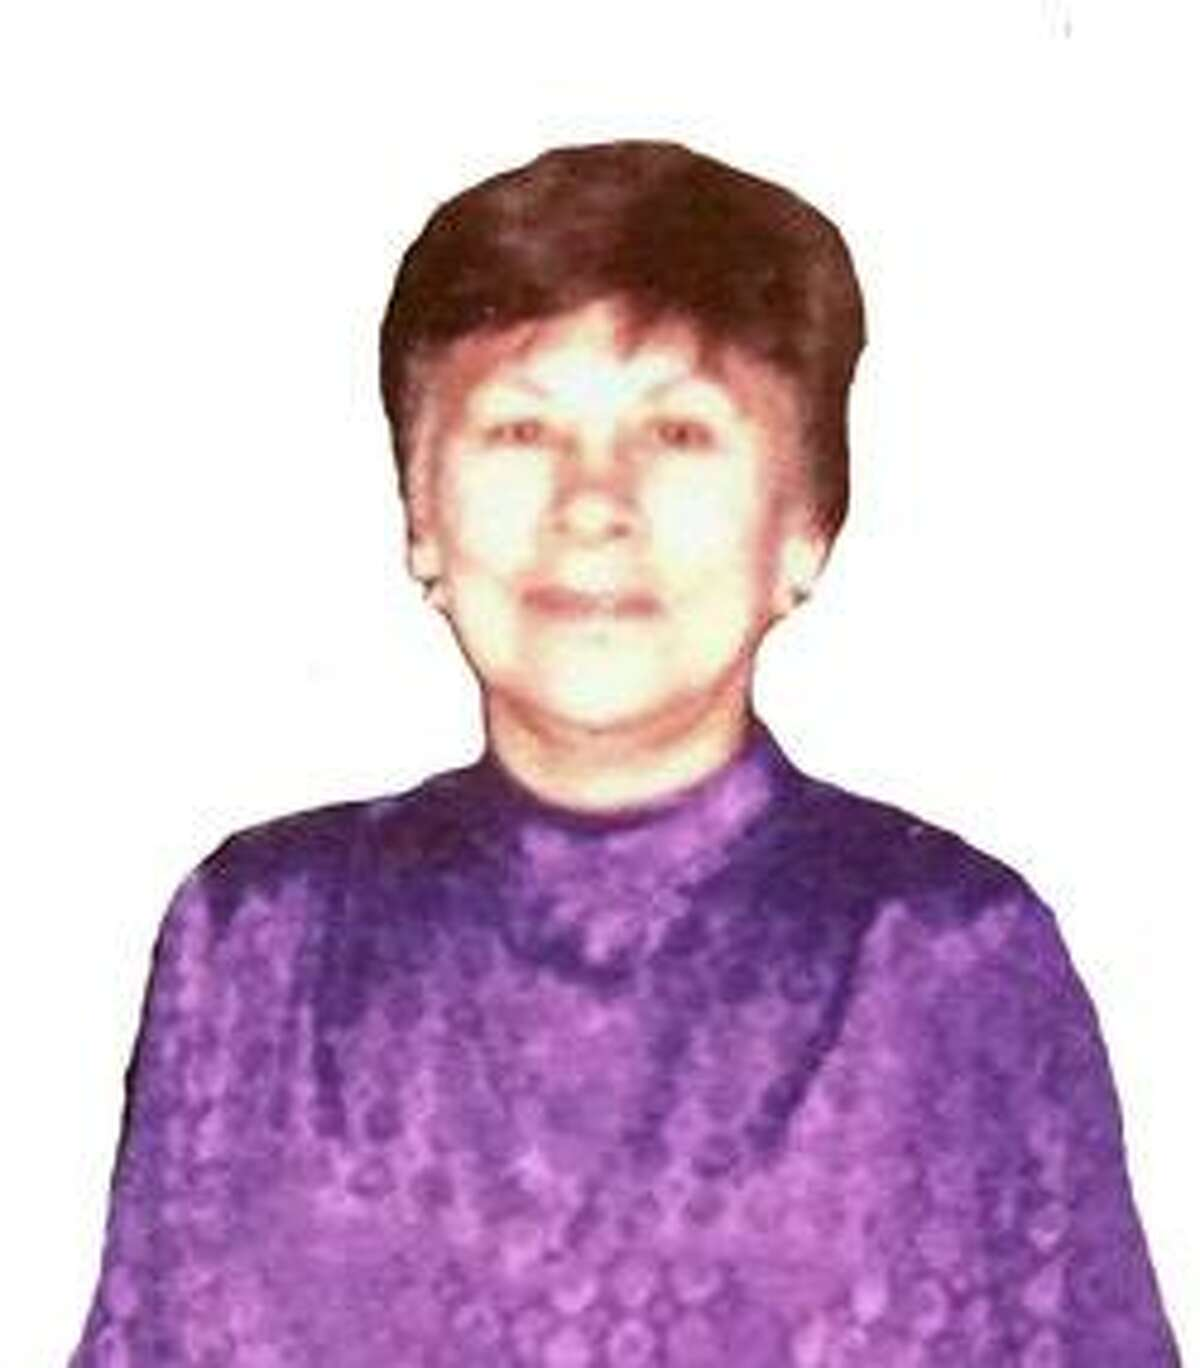 Jesusa Carrejo, 74, died from blunt force trauma after police said her son attacked her with a hammer on May 31, 2015.